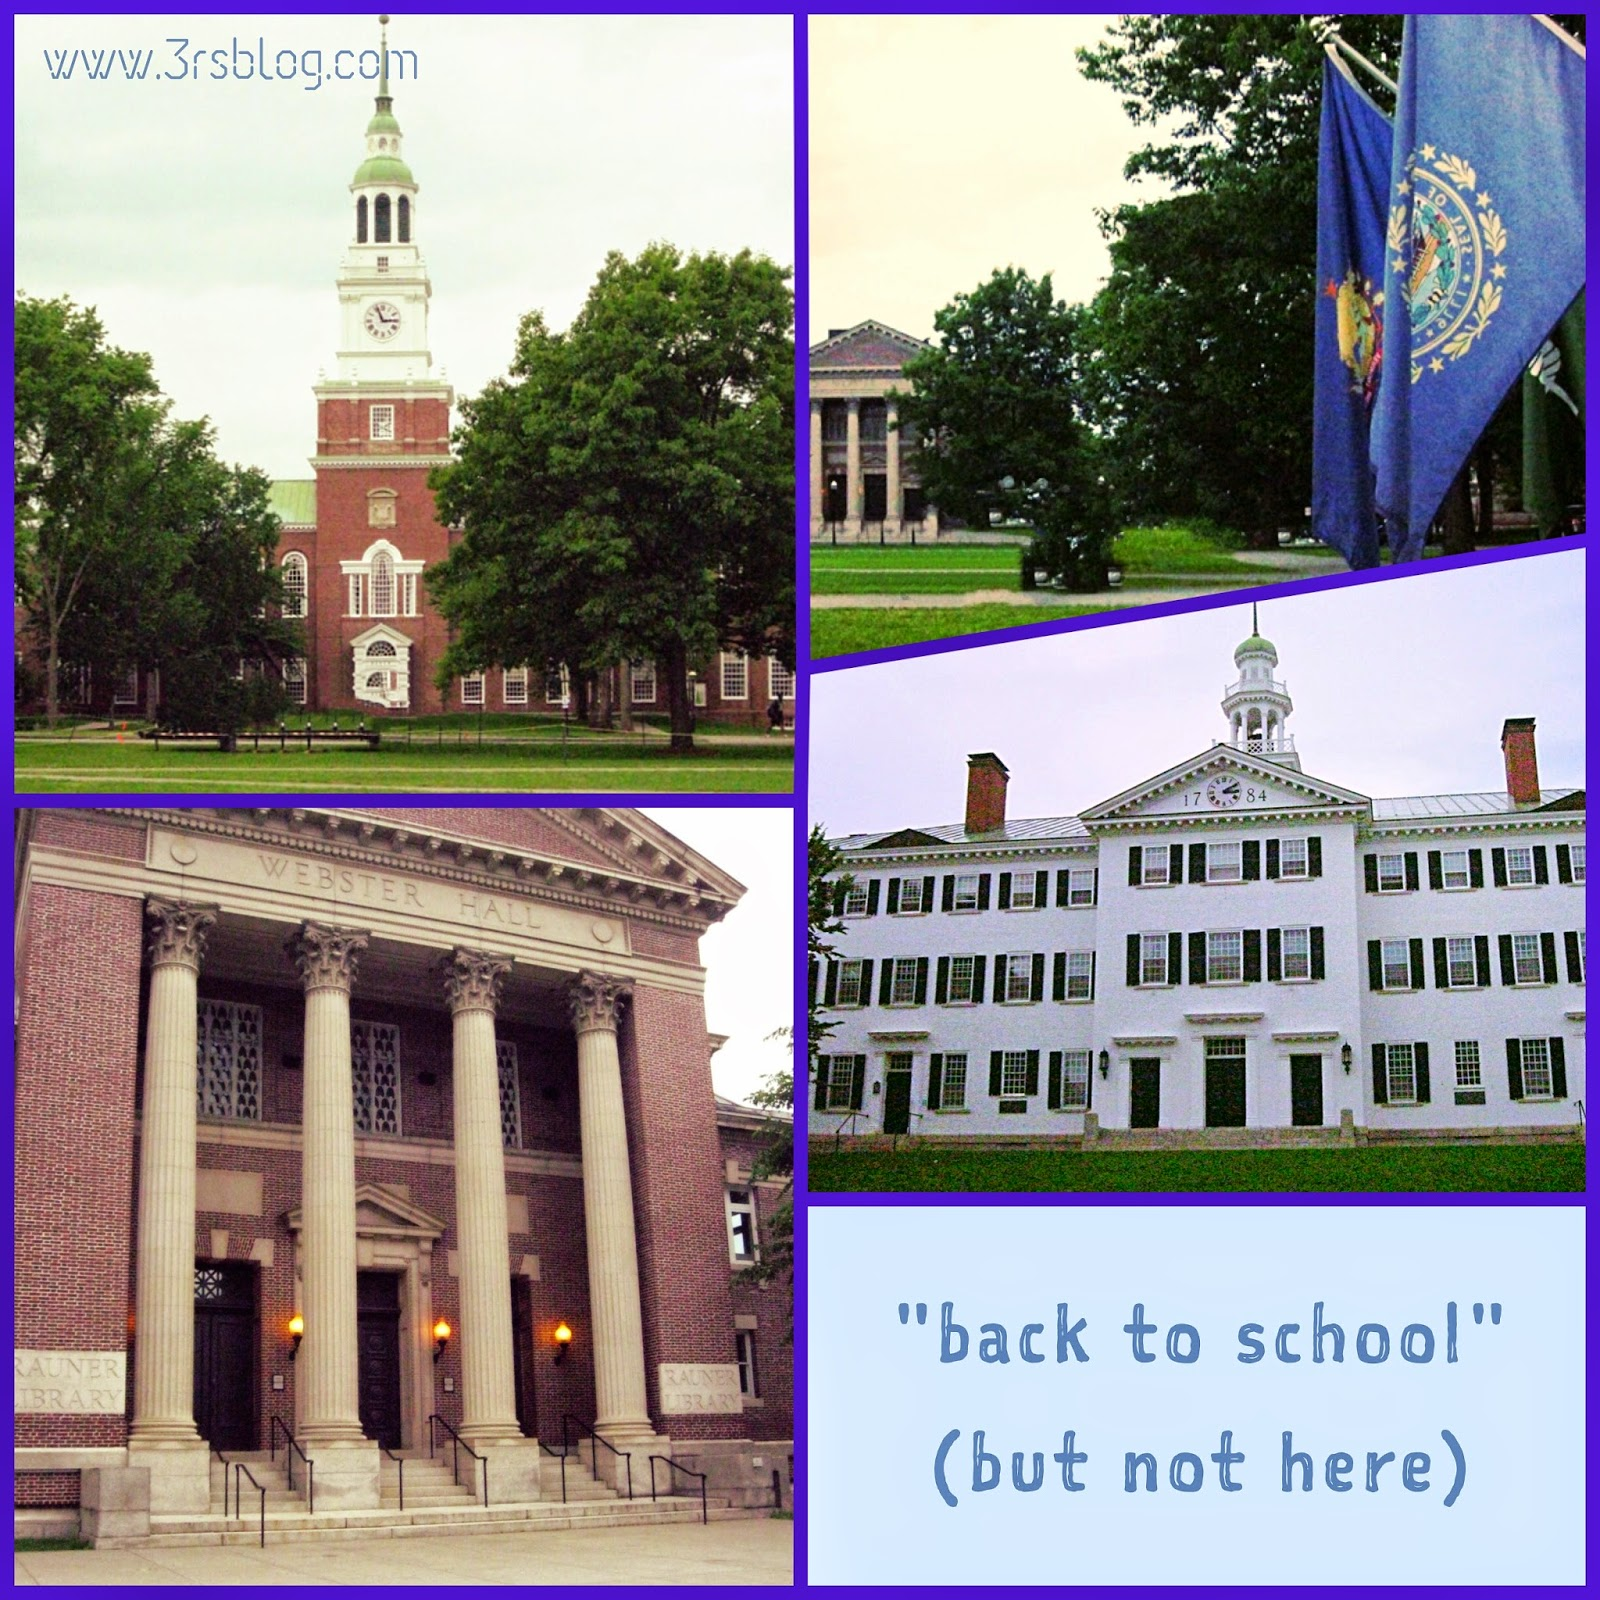 Photo collage Dartmouth College Hanover NH June 2013